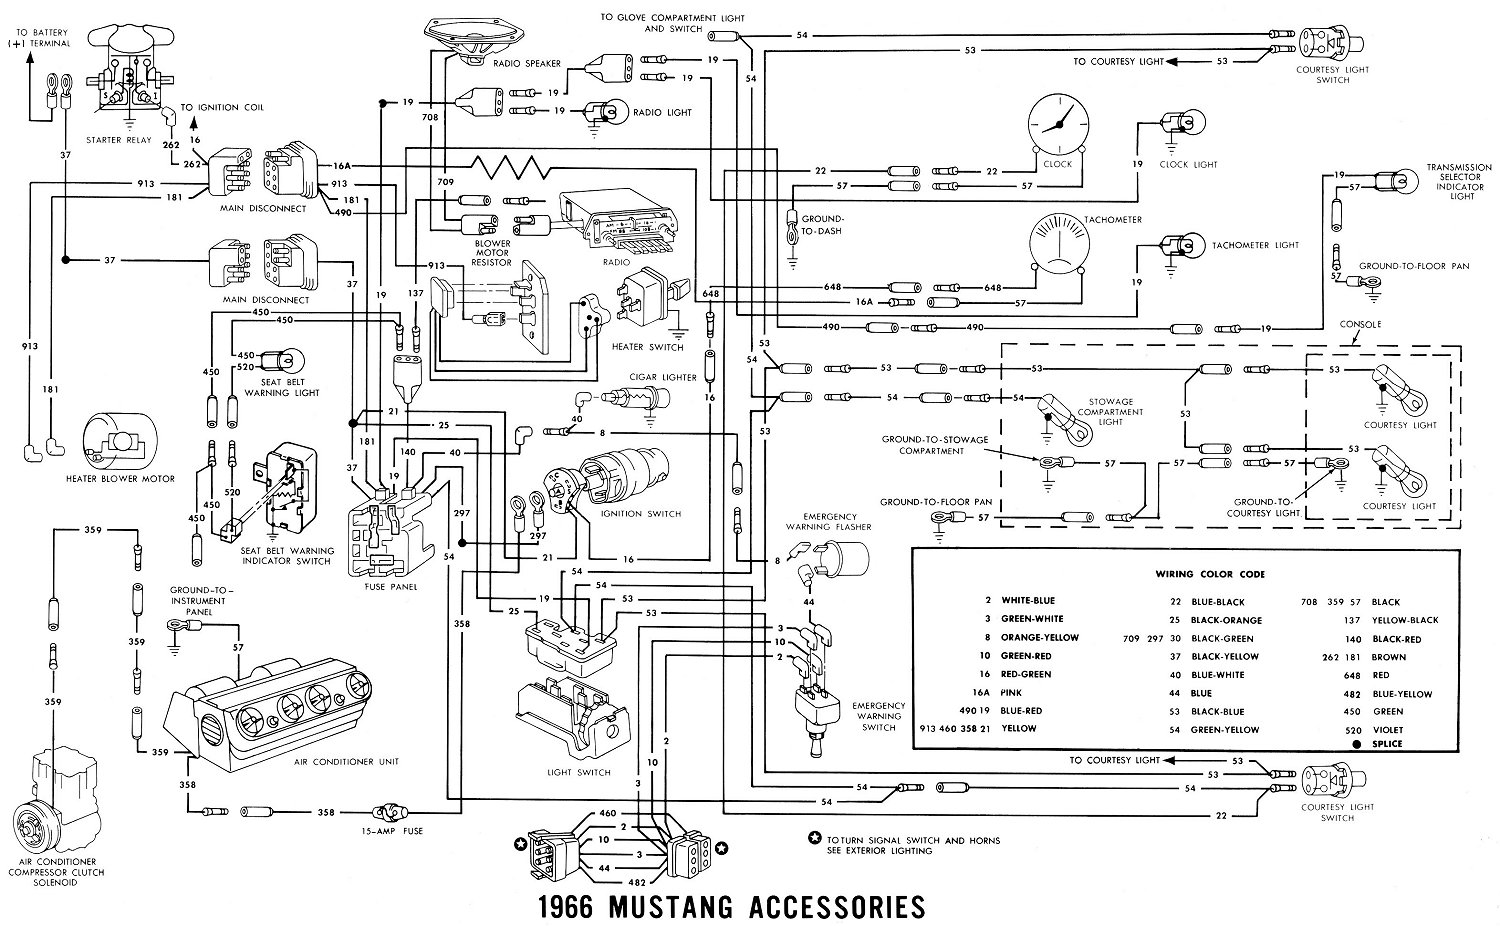 66acces1 1966 mustang wiring diagram 1966 mustang radio diagram \u2022 free 66 mustang fuse box diagram at creativeand.co